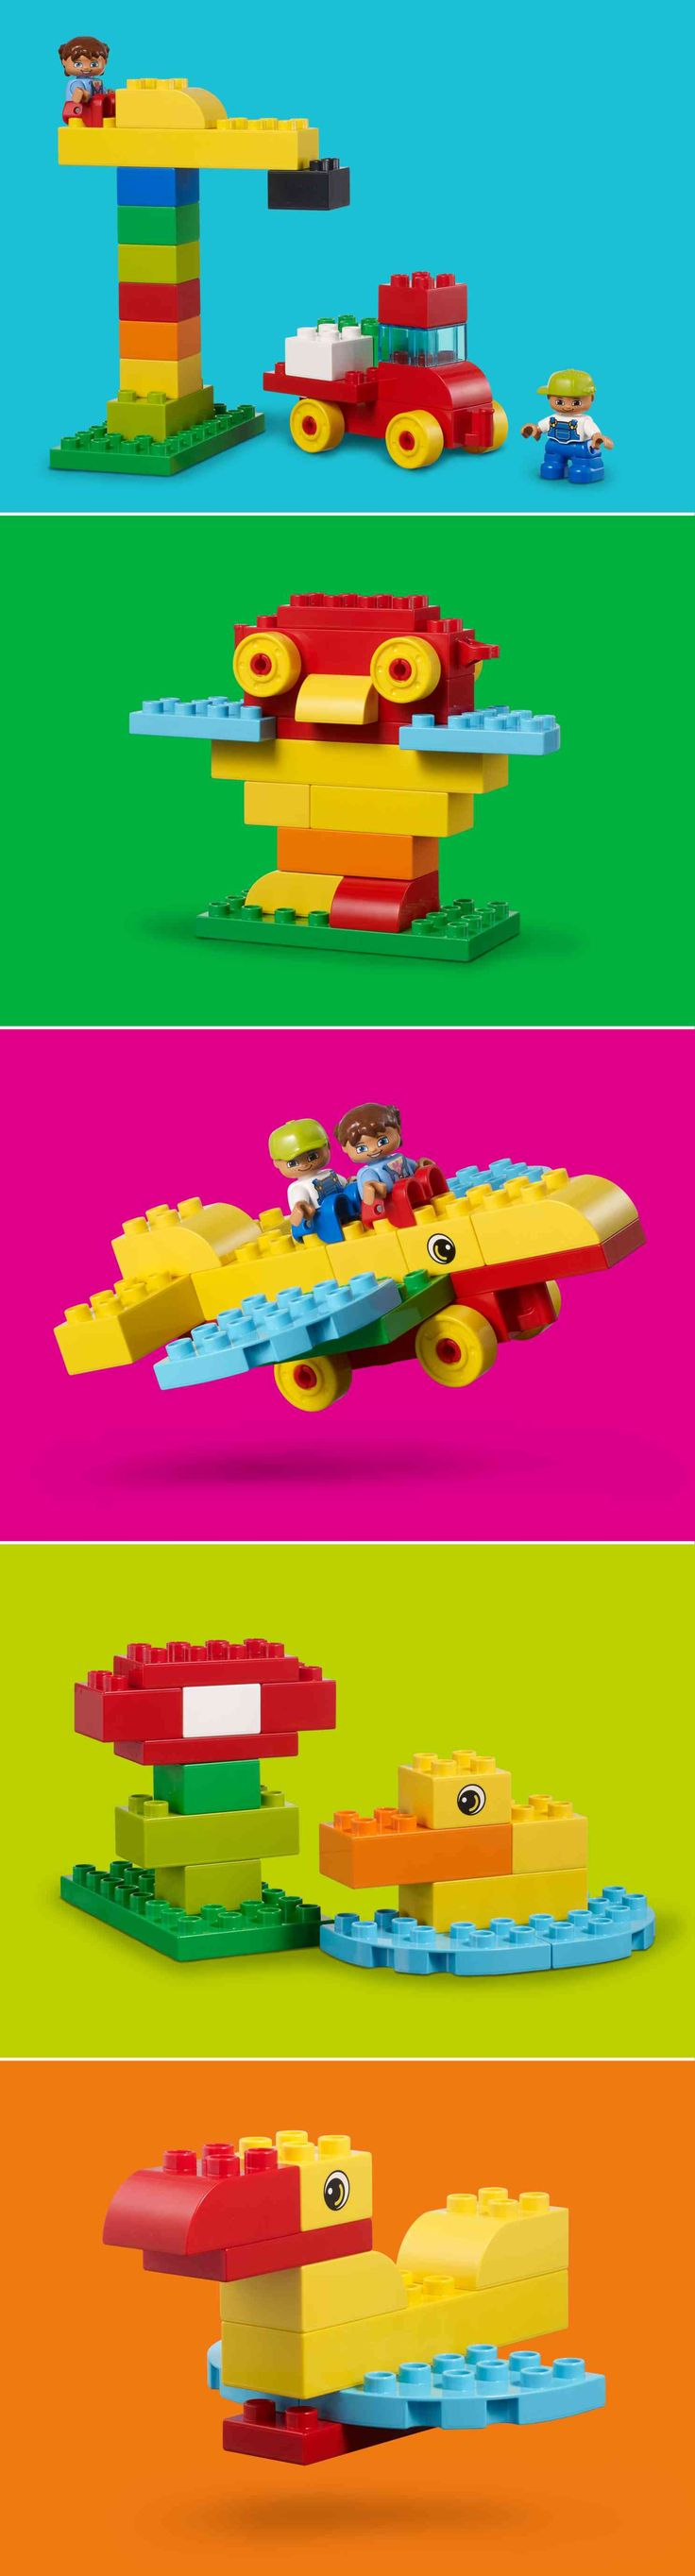 Easy builds with LEGO® DUPLO® - Artikel - Family LEGO.com